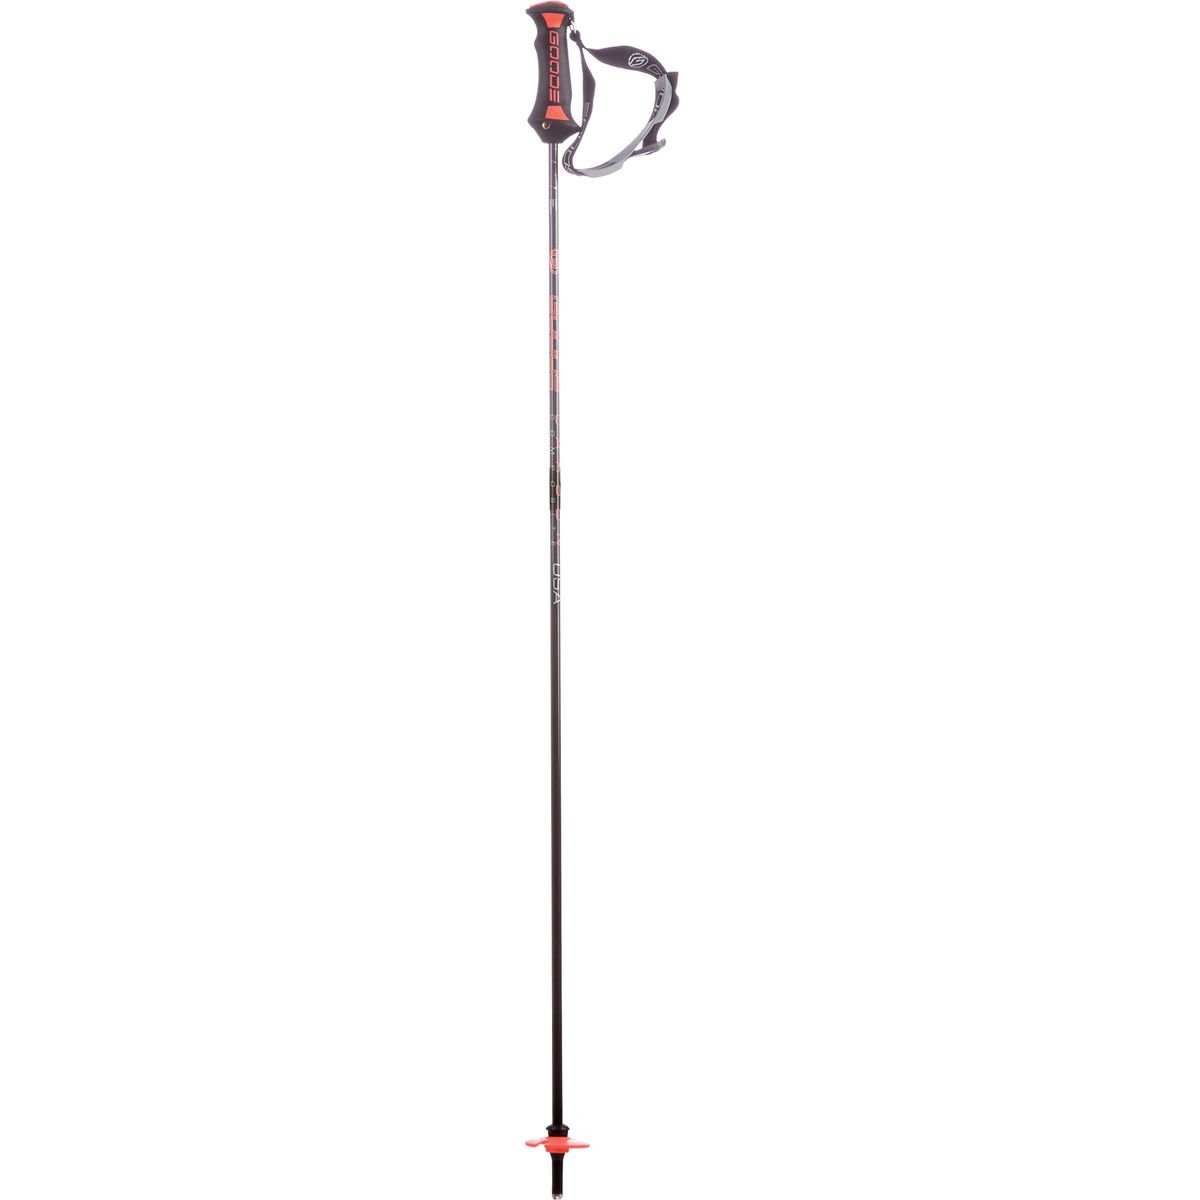 Goode Pure Carbon Ski Poles Classic Orange, 50in by Goode